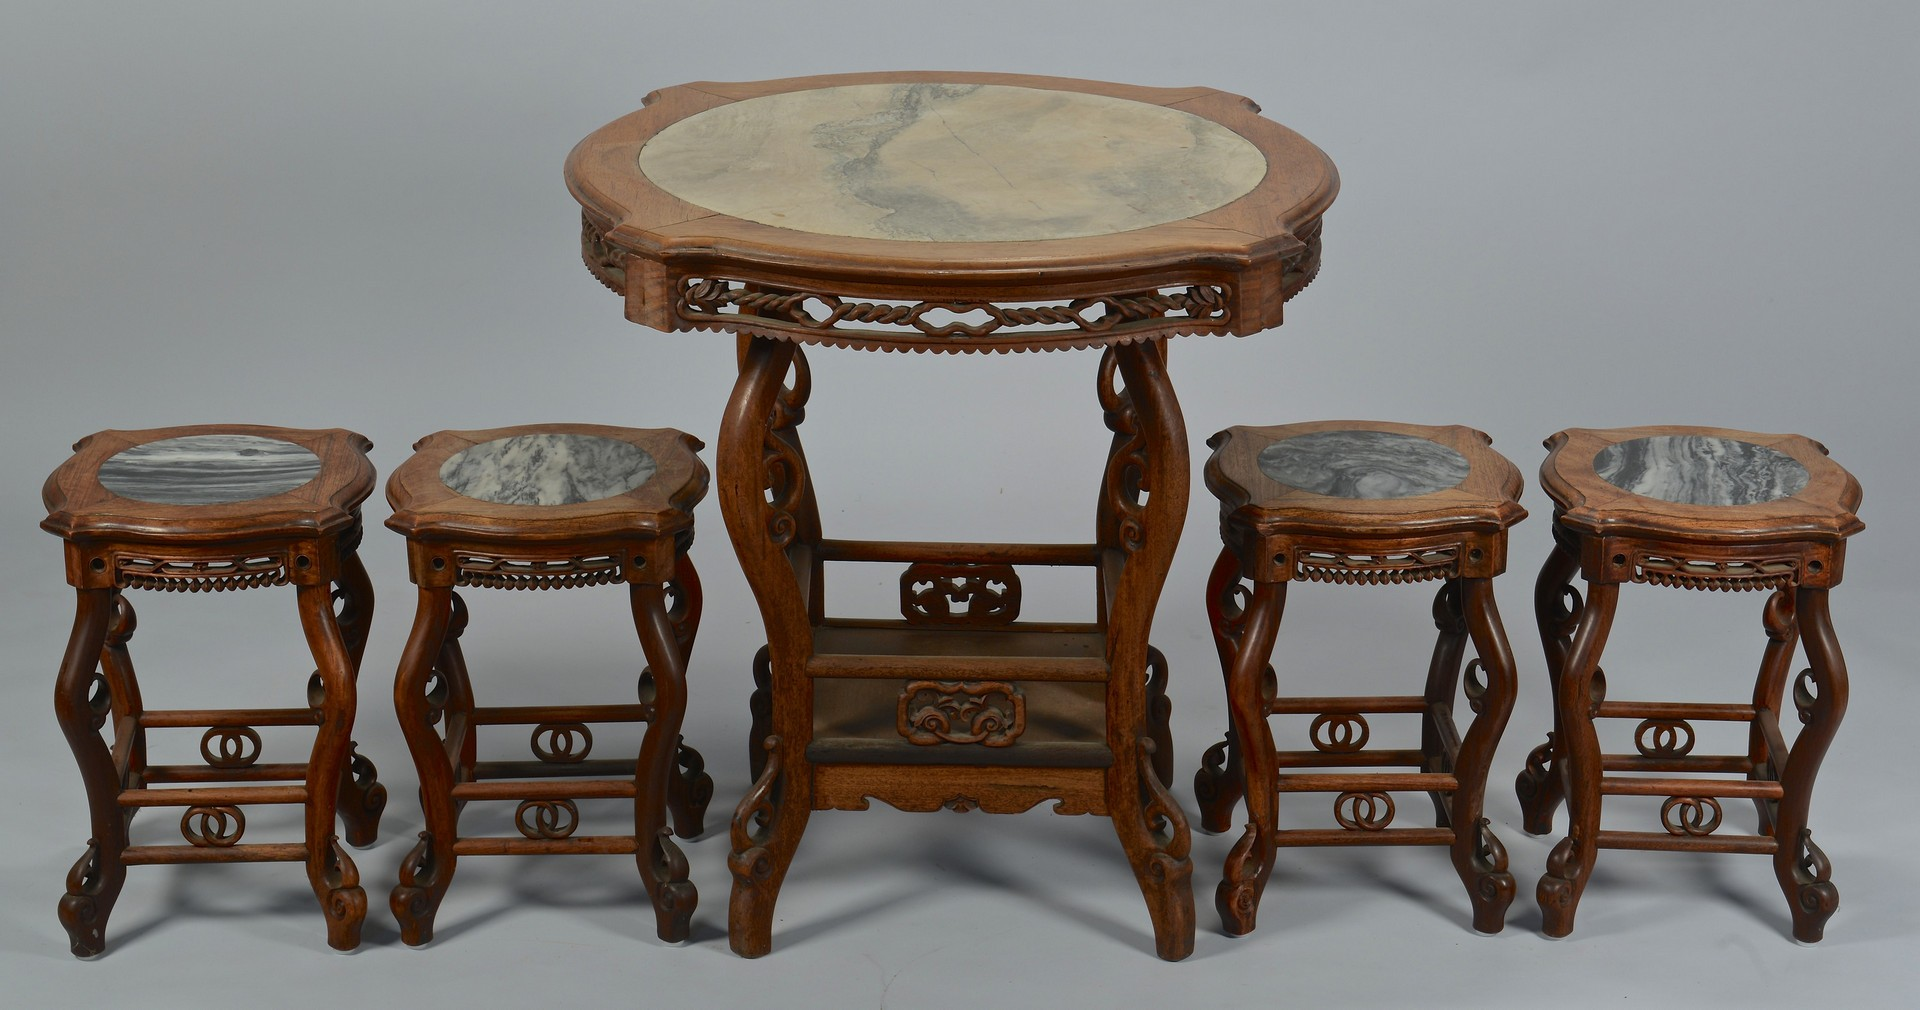 Lot 3383160: Chinese Marble Top Hardwood Table & 4 Stools